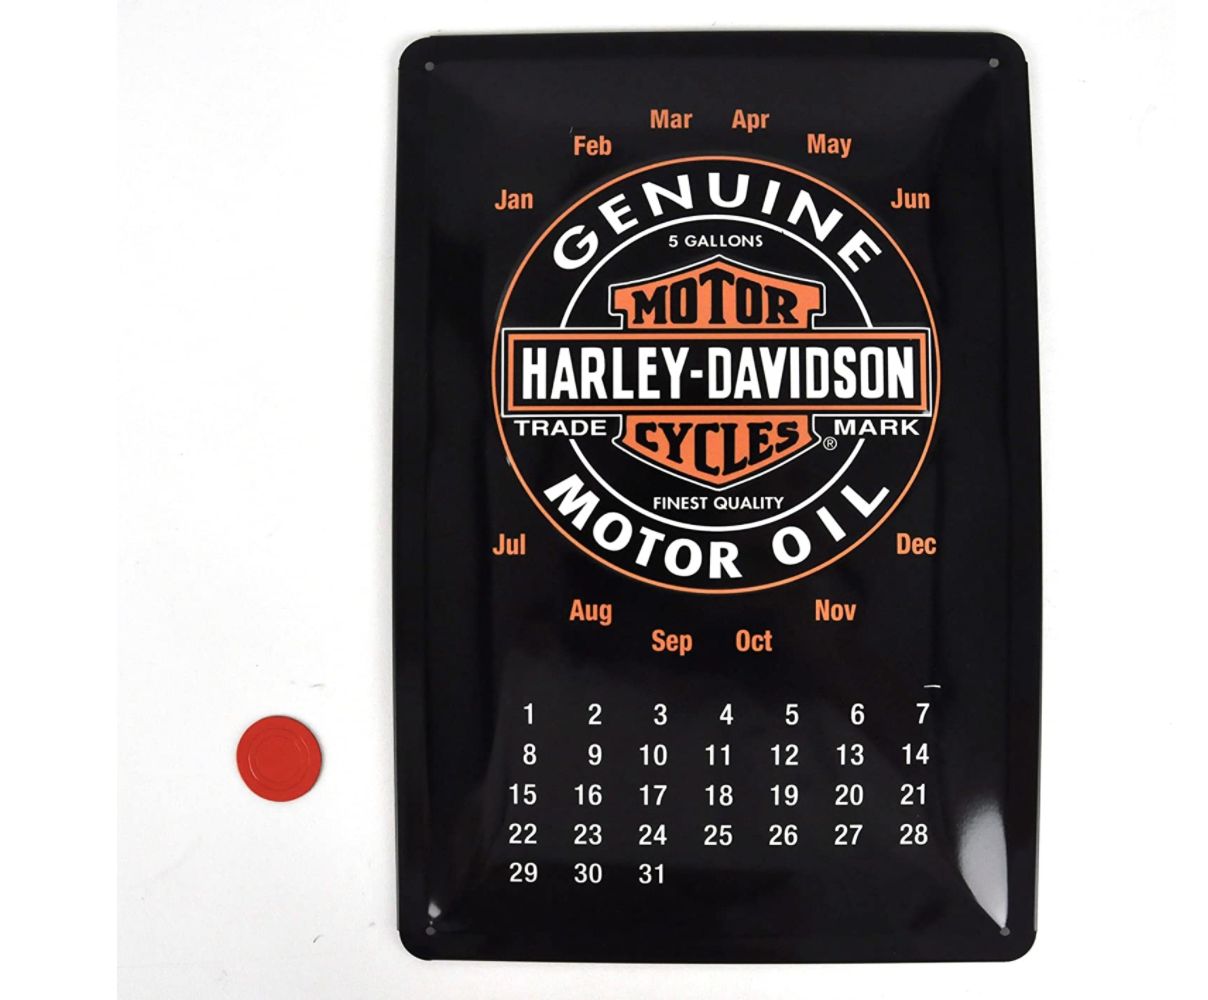 NOSTALGIC ART HARLEY DAVIDSON PLAQUE METTALIQUE CALENDRIER VINTAGE SECURITE SIGNALITIQUE DECORATION DECOR MAISON SHOP BOUTIQUE BAR COLLECTION  4036113221359 COMASOUND KARTEL CSK ONLINE